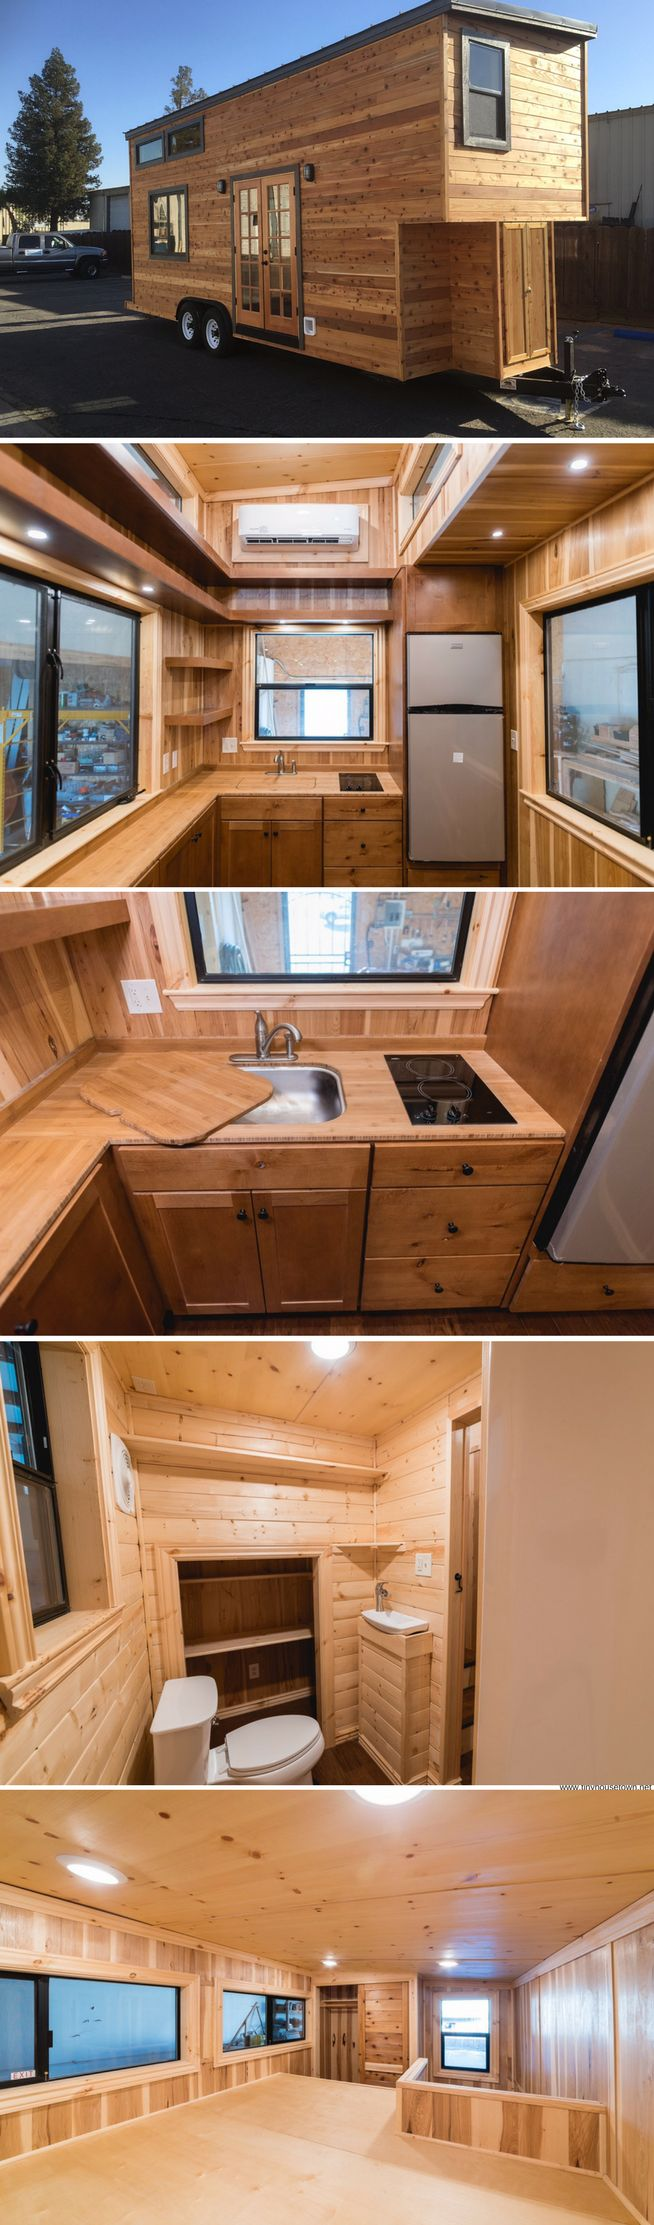 Best Cabin Style Tiny Homes Images On Pinterest Tiny House